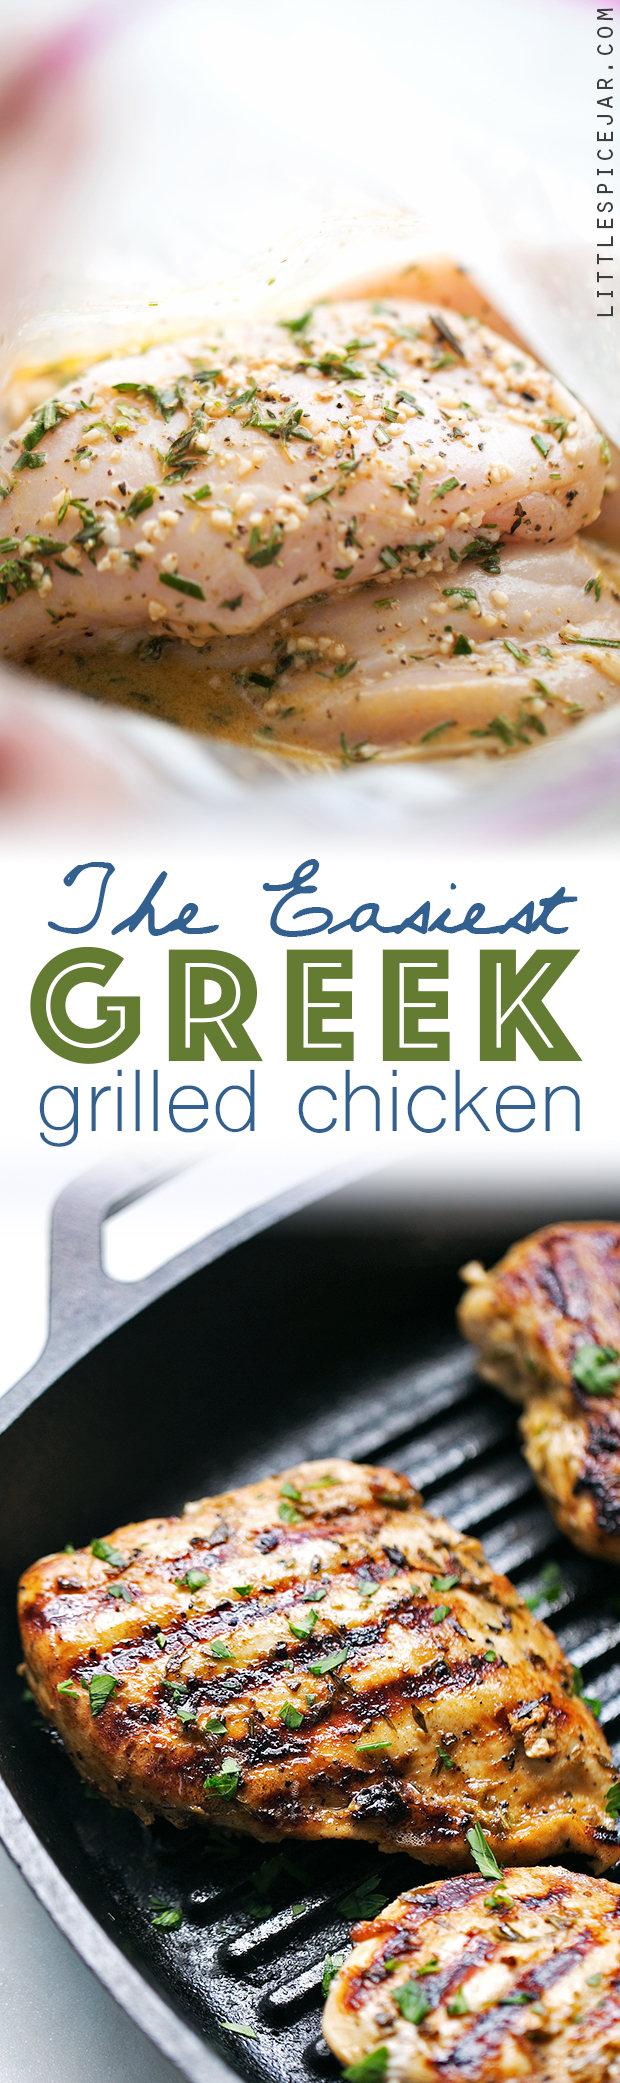 The Easiest Greek Grilled Chicken - 10 simple ingredients in this tender and juicy greek marinated chicken! Loaded with protein and perfect for meal prepping! #mealprep #grilledchicken #greekchicken #greekgrilledchicken | Littlespicejar.com